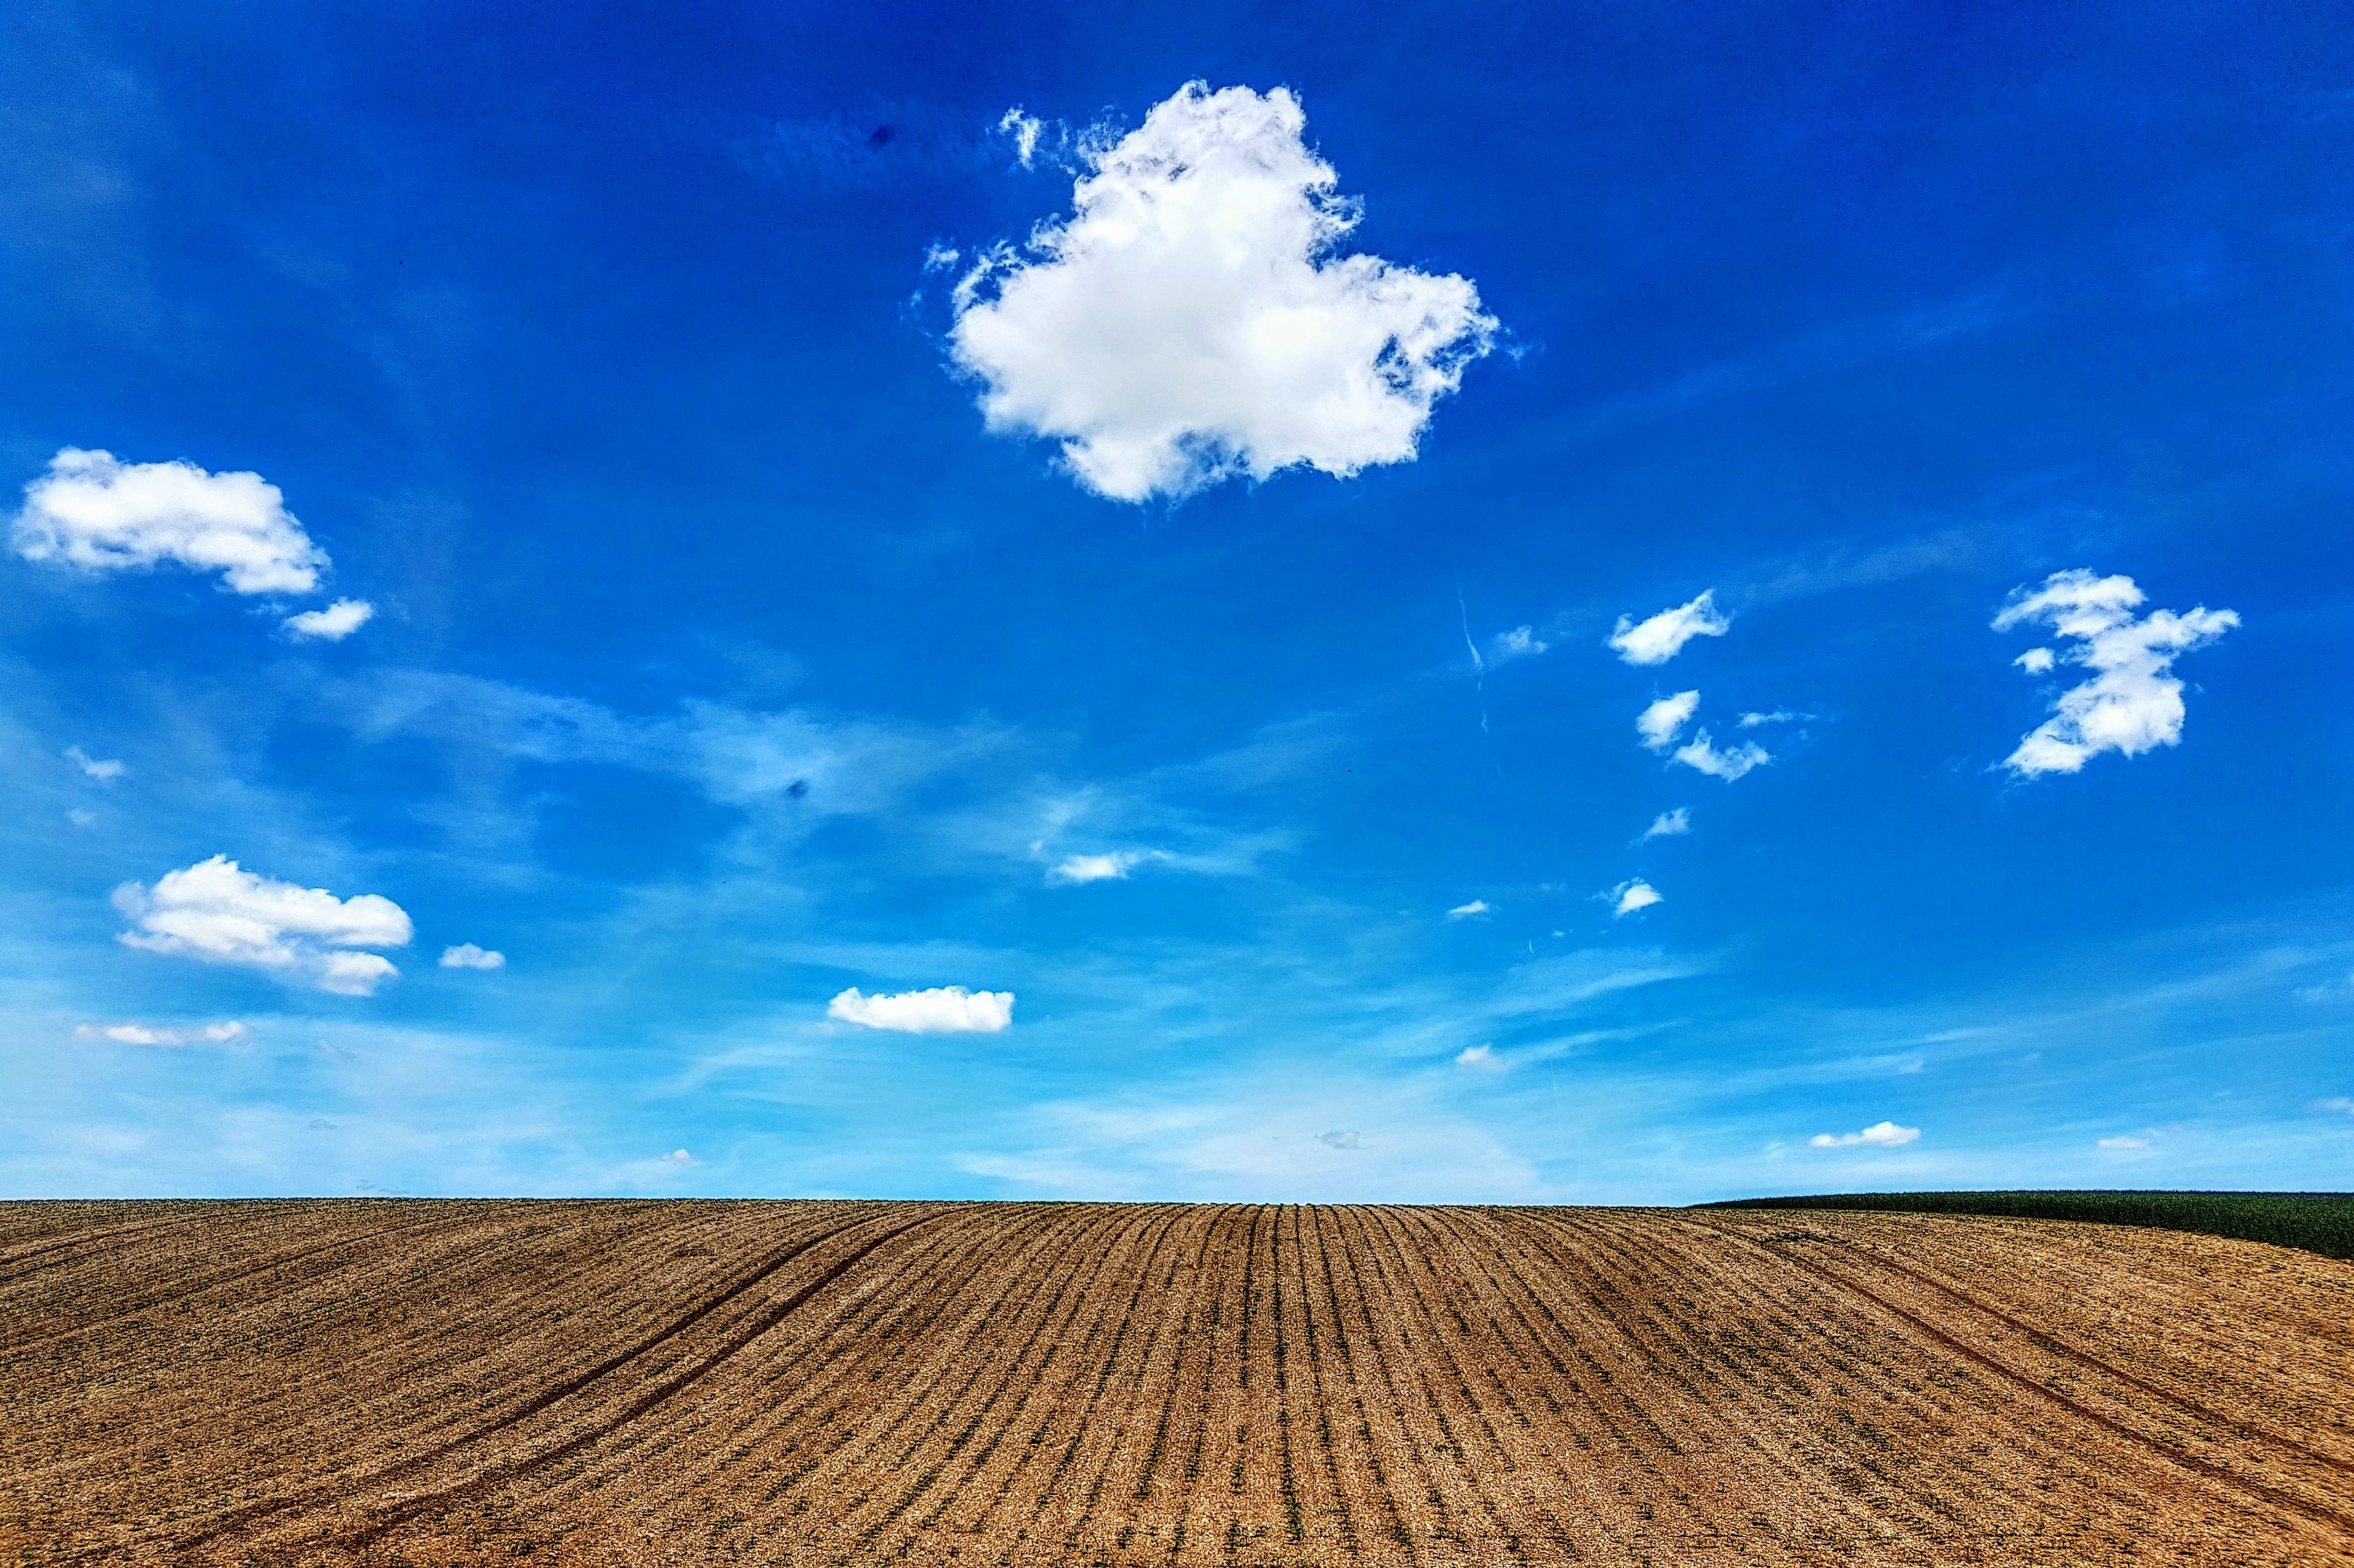 sky, field, landscape, cloud - sky, agriculture, nature, blue, scenics, rural scene, beauty in nature, tranquil scene, horizon over land, tranquility, day, outdoors, no people